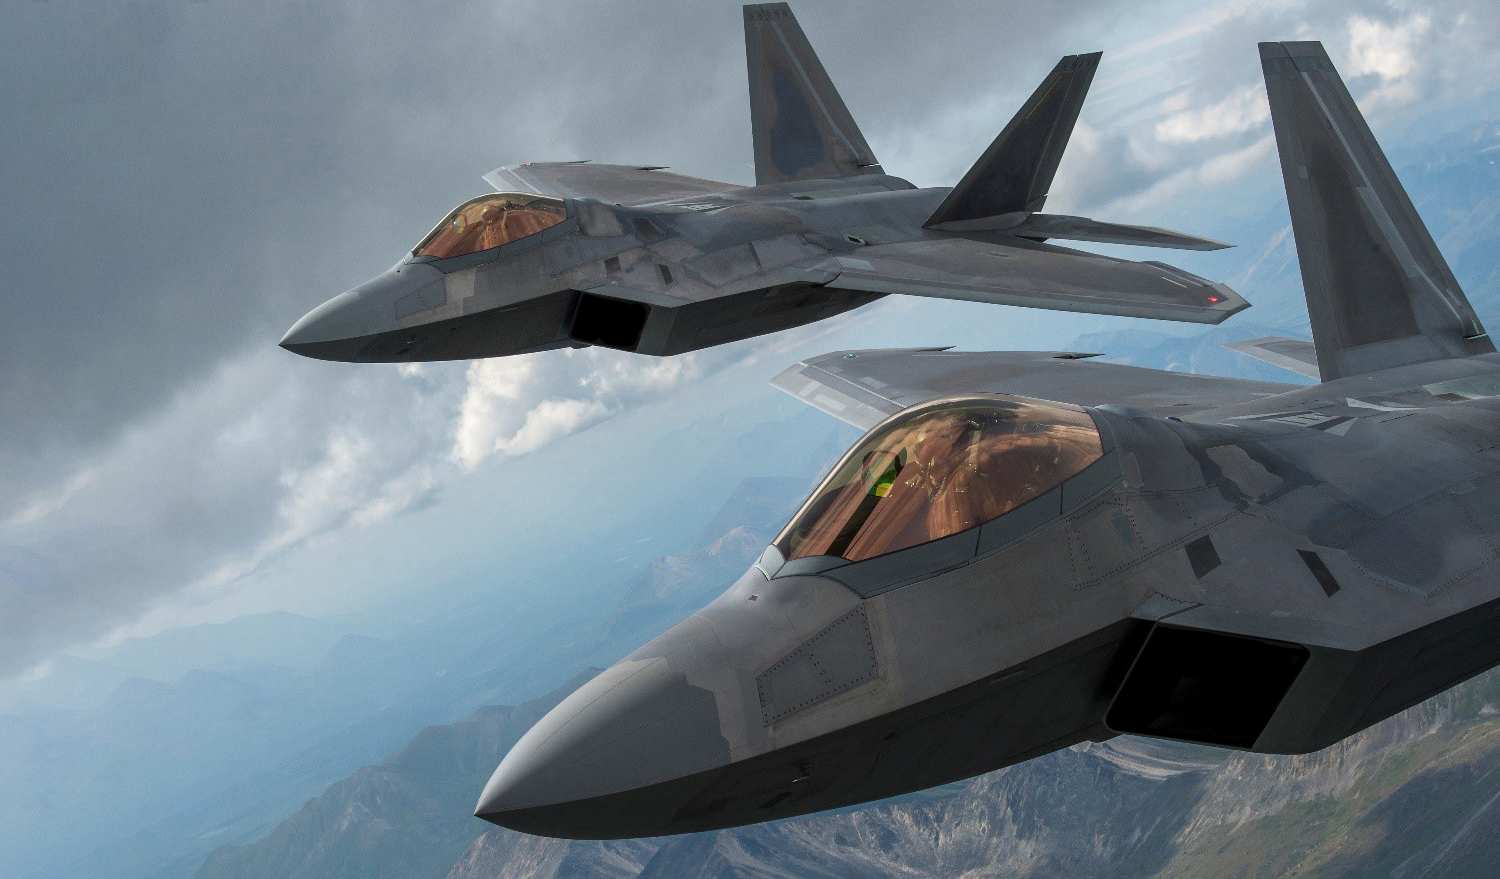 US Military • F-22 Raptor Was and Remains — One of the World's Best Air Superiority Fighters